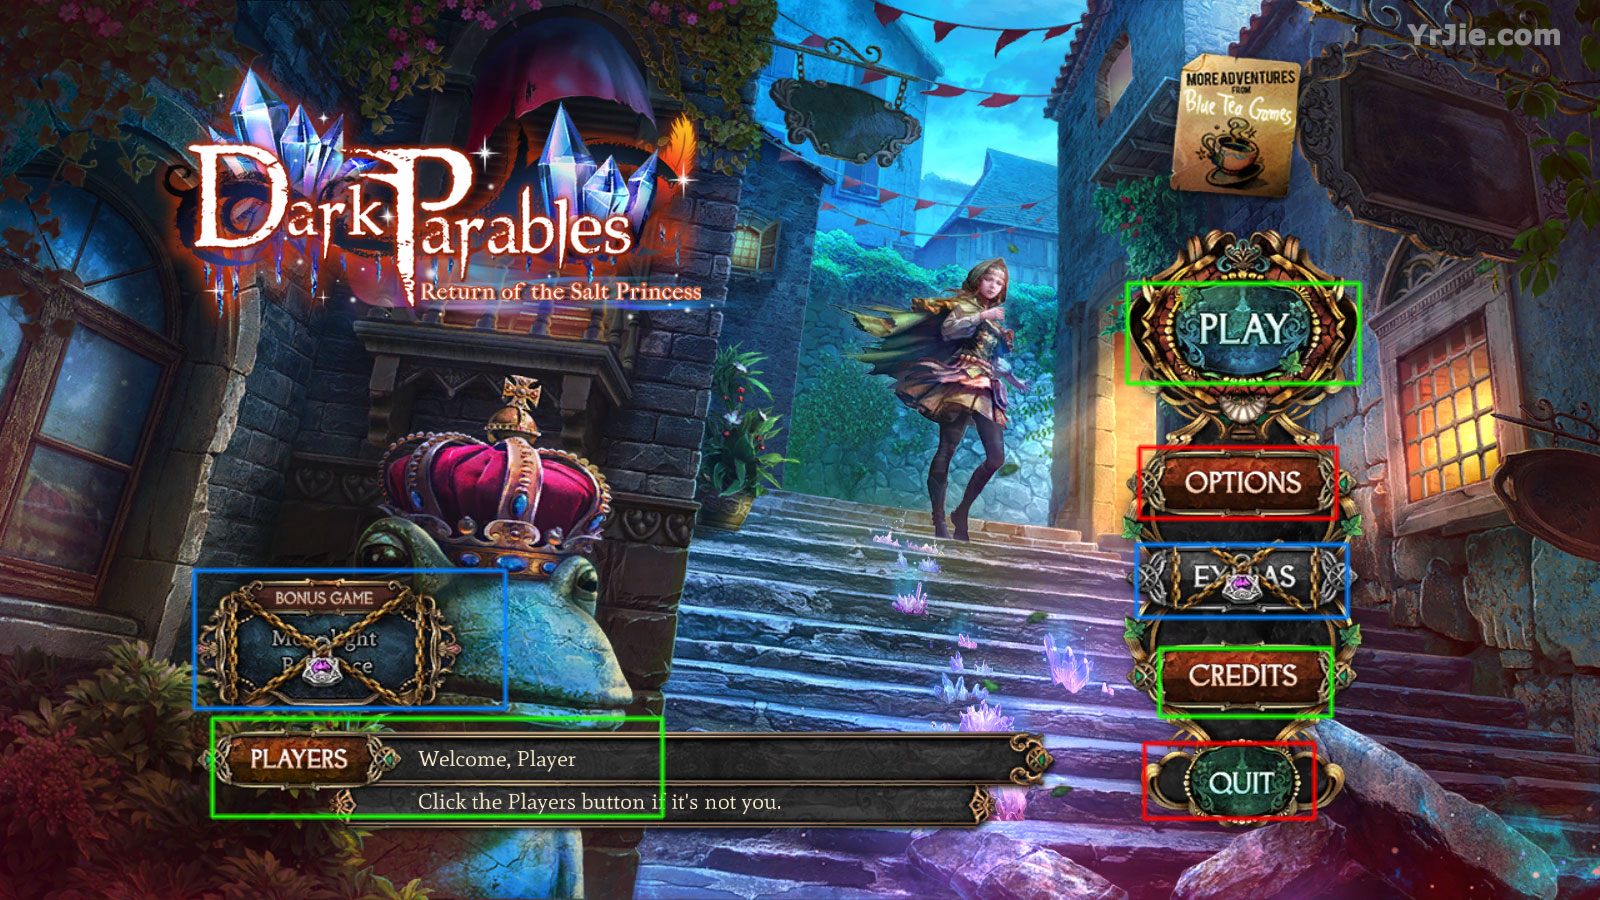 dark parables: return of the salt princess walkthrough screenshots 1